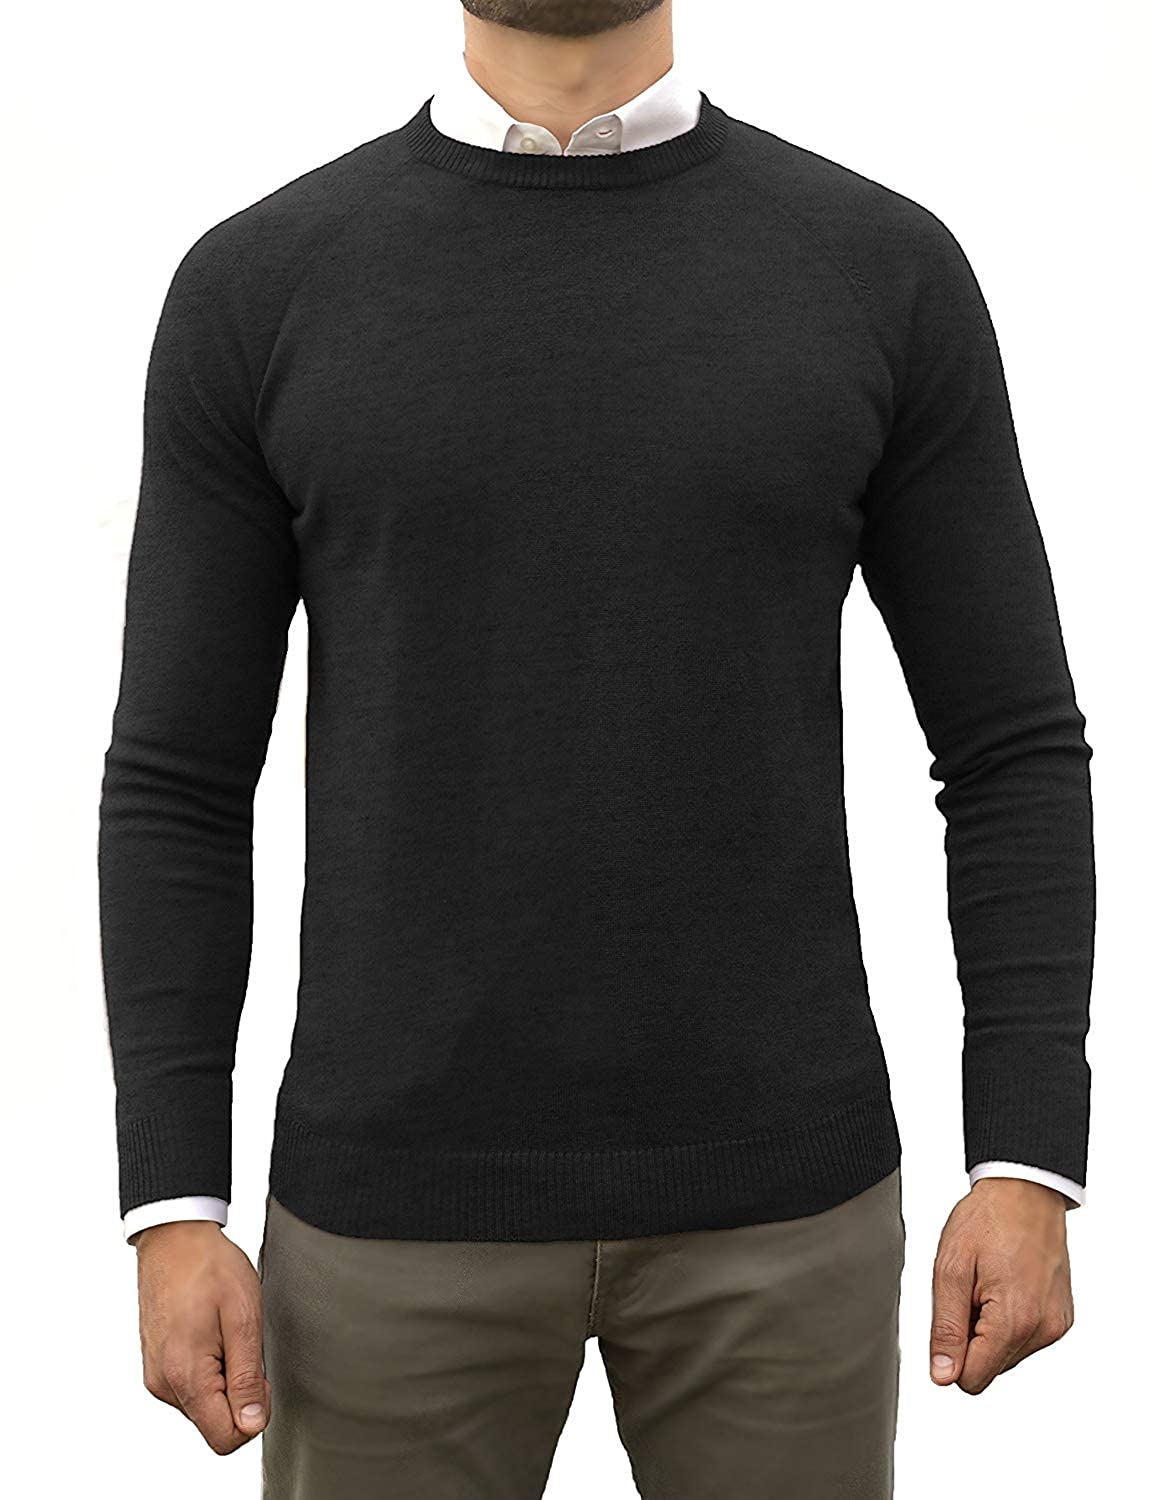 Comfortably Collared Mens Perfect Slim Fit Lightweight Soft Fitted